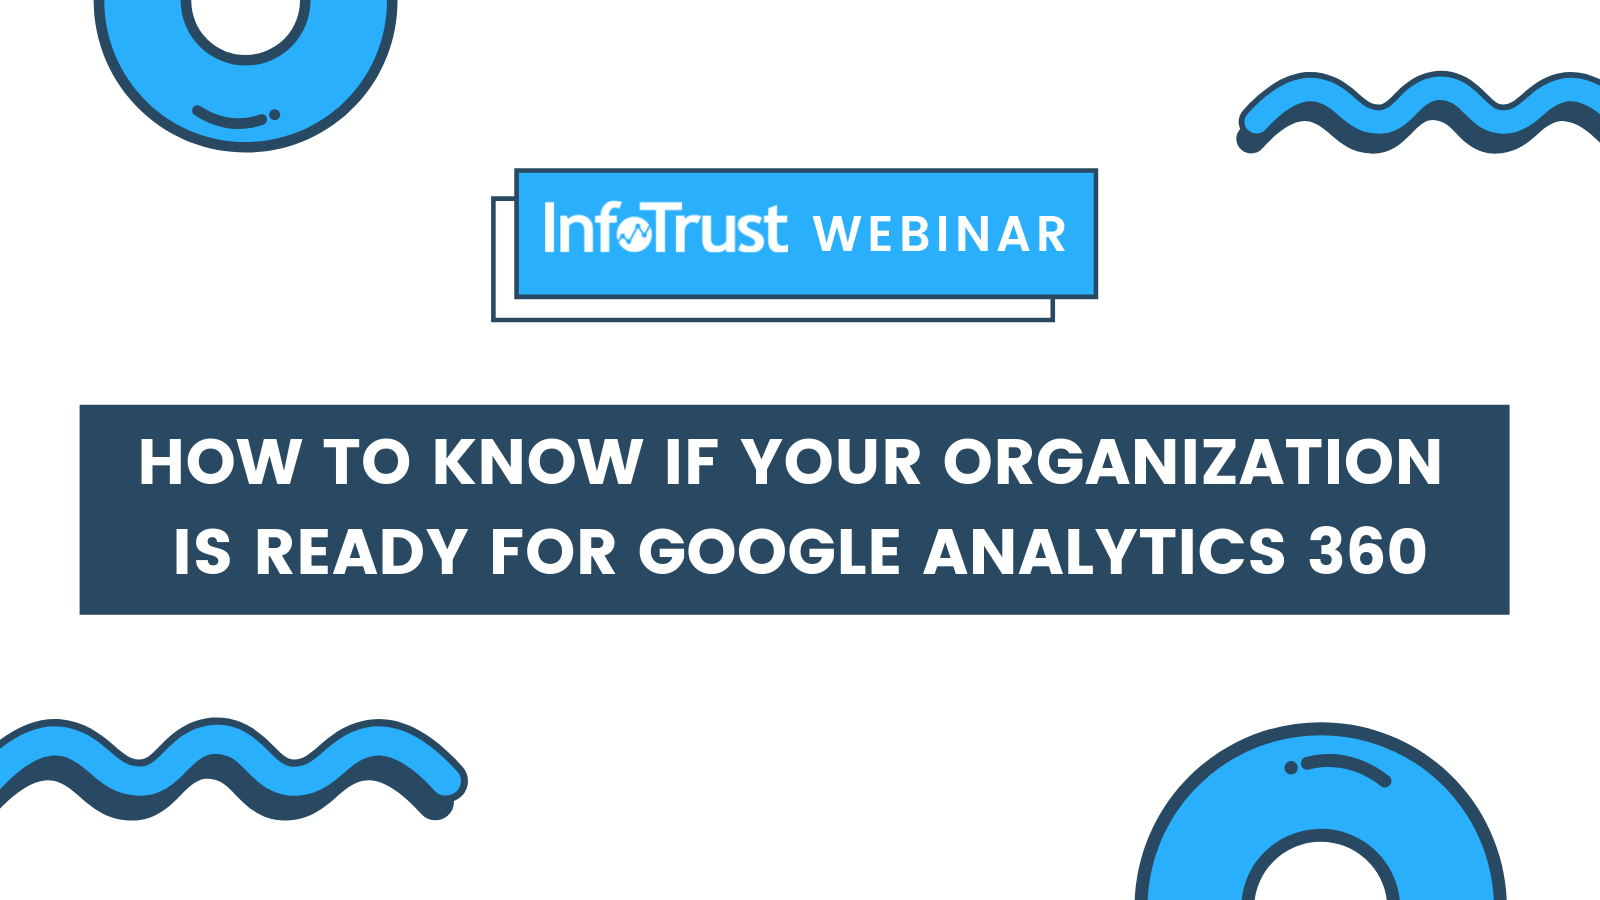 How to Know If Your Organization is Ready for Google Analytics 360